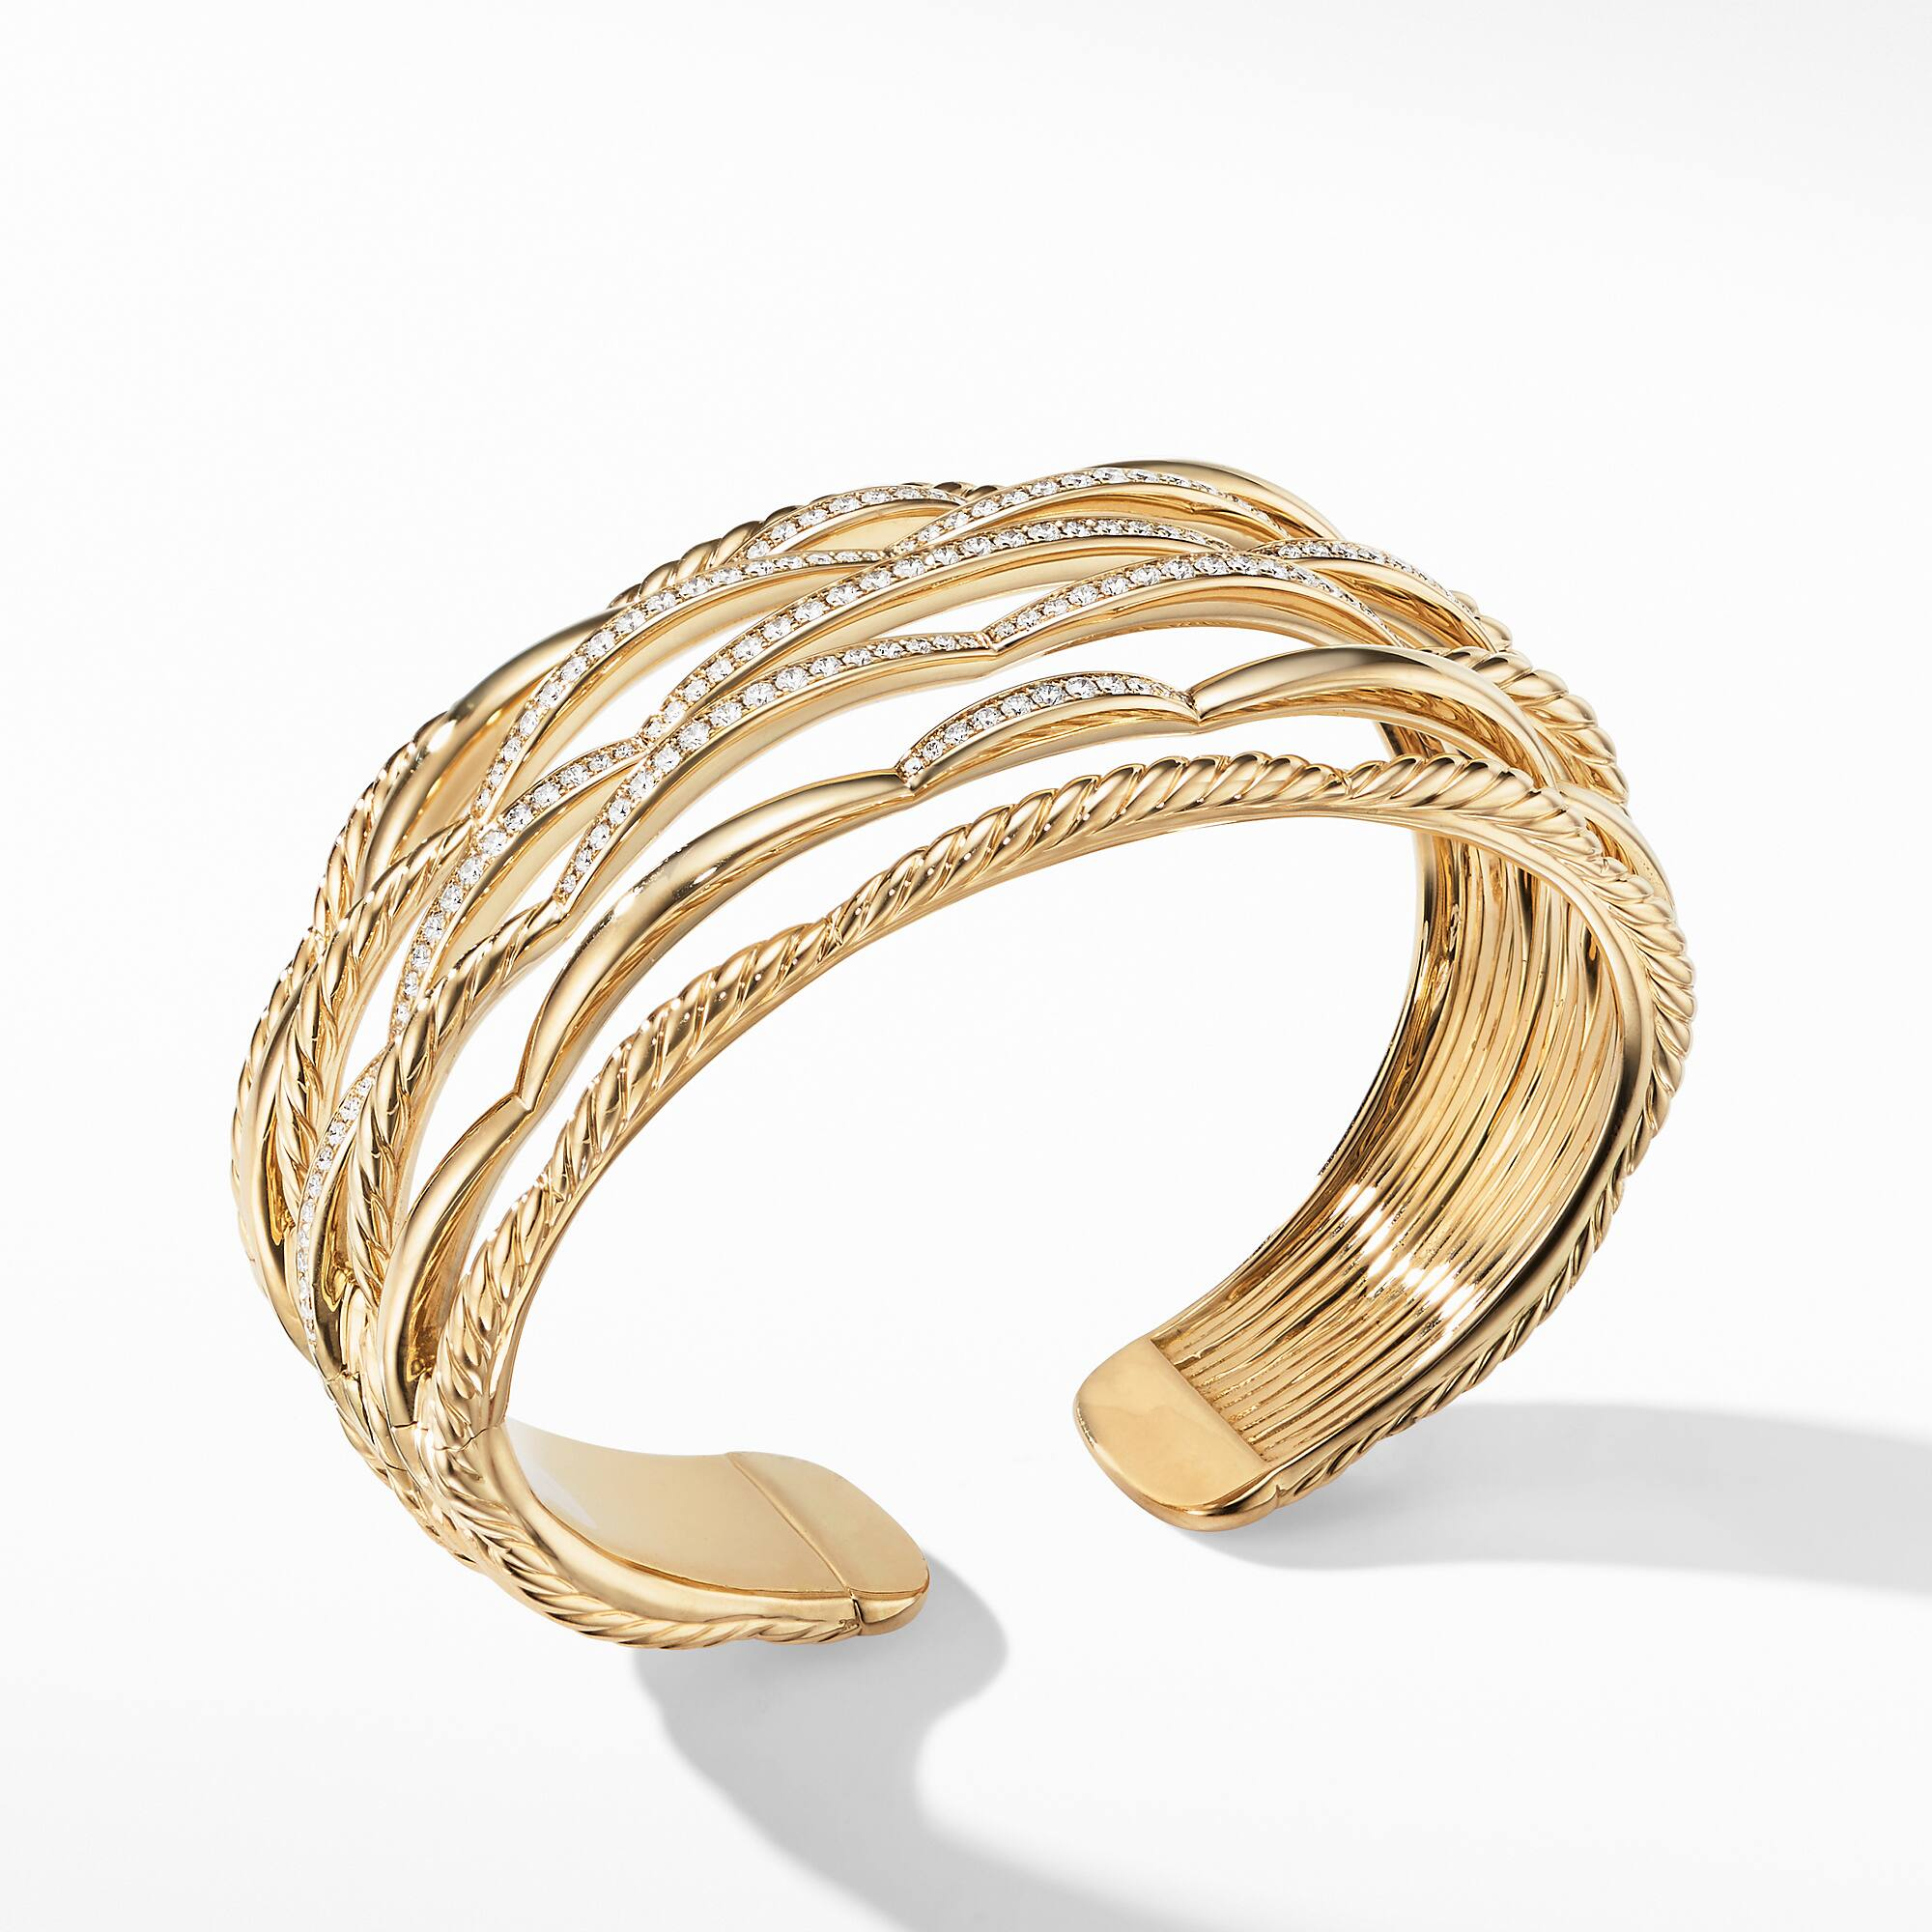 Tides Cuff Bracelet in 18K Yellow Gold with Diamonds